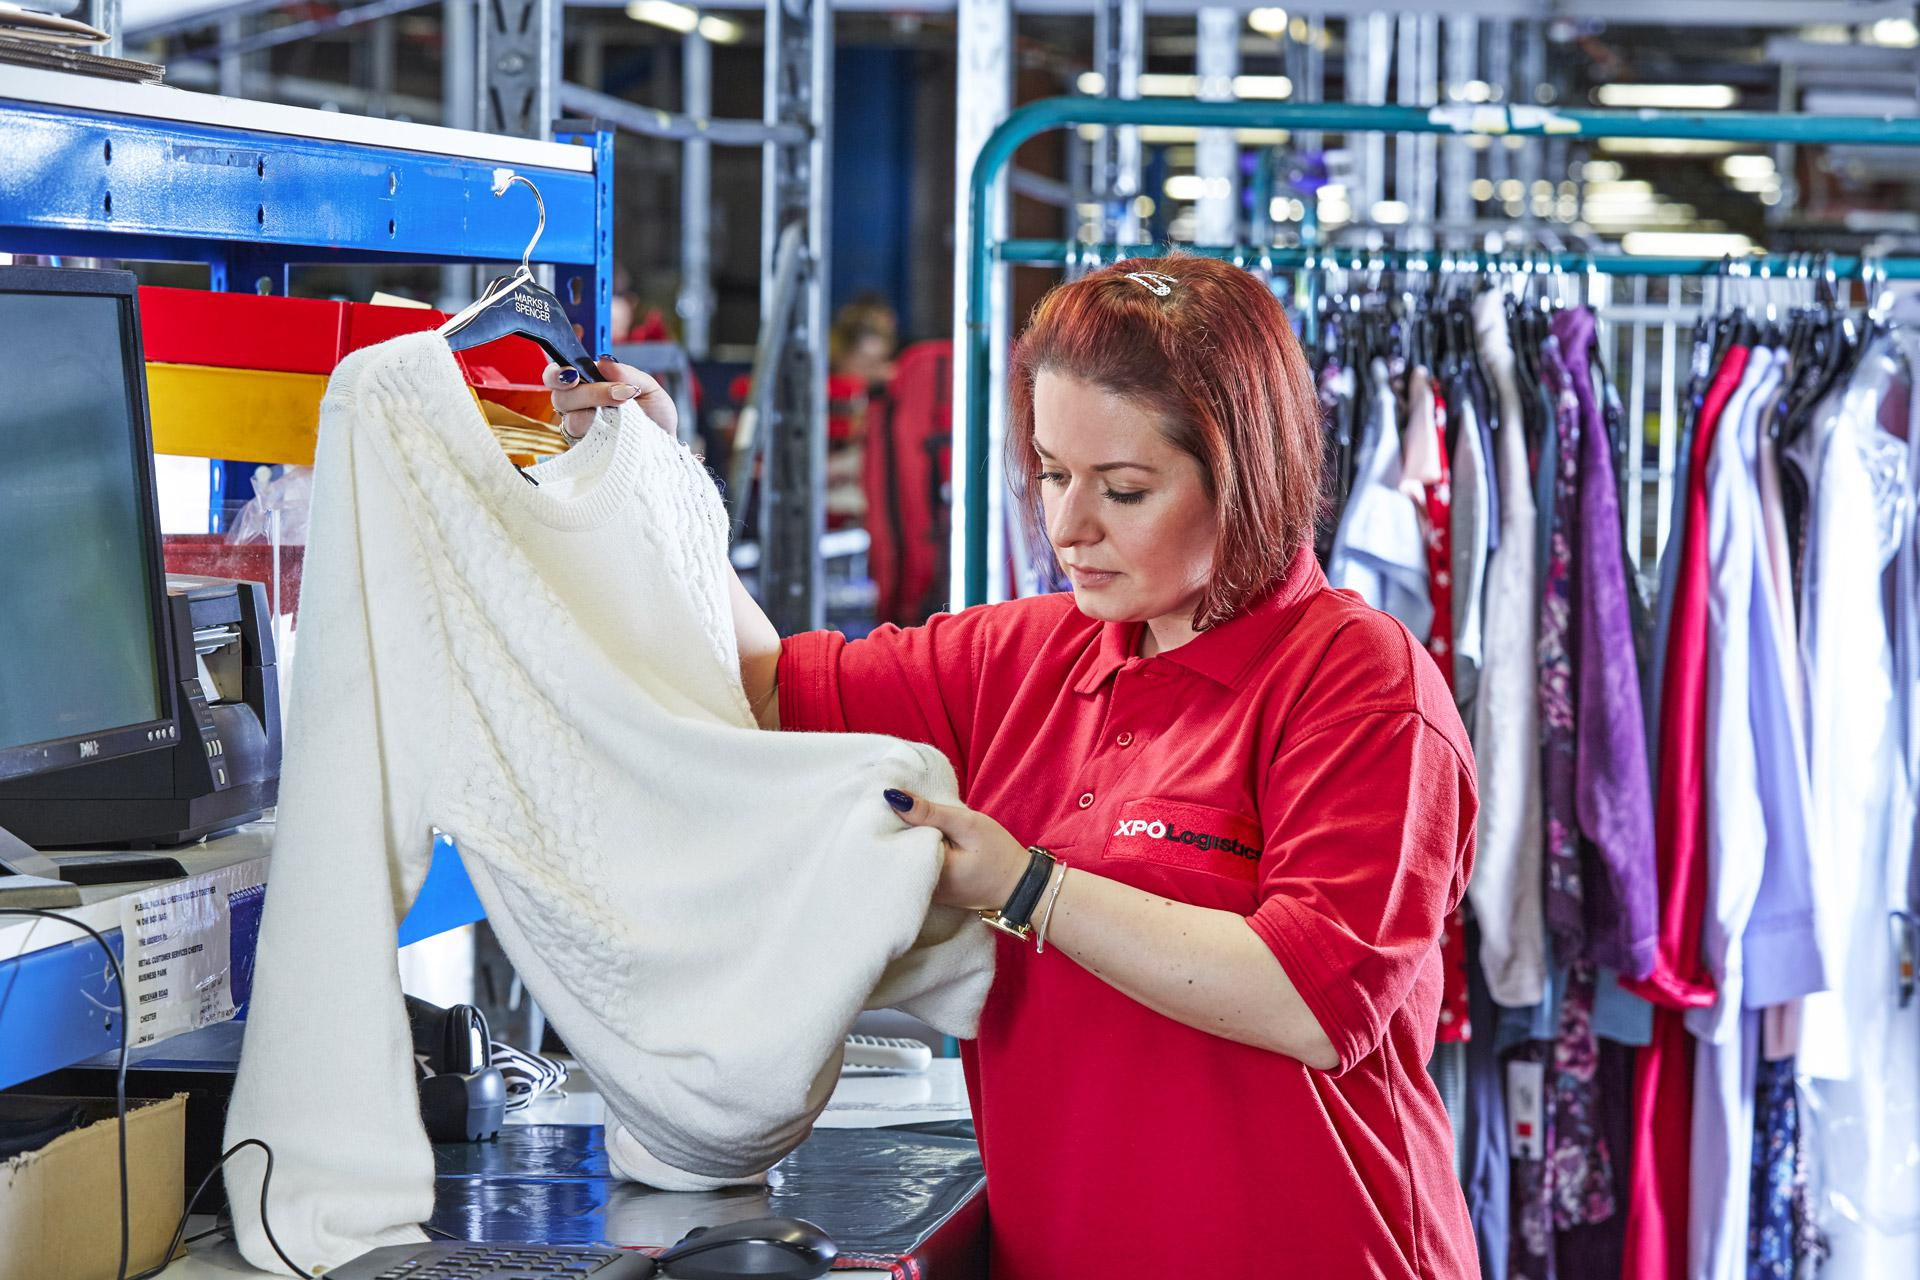 XPO employee considers quality of a returned garment